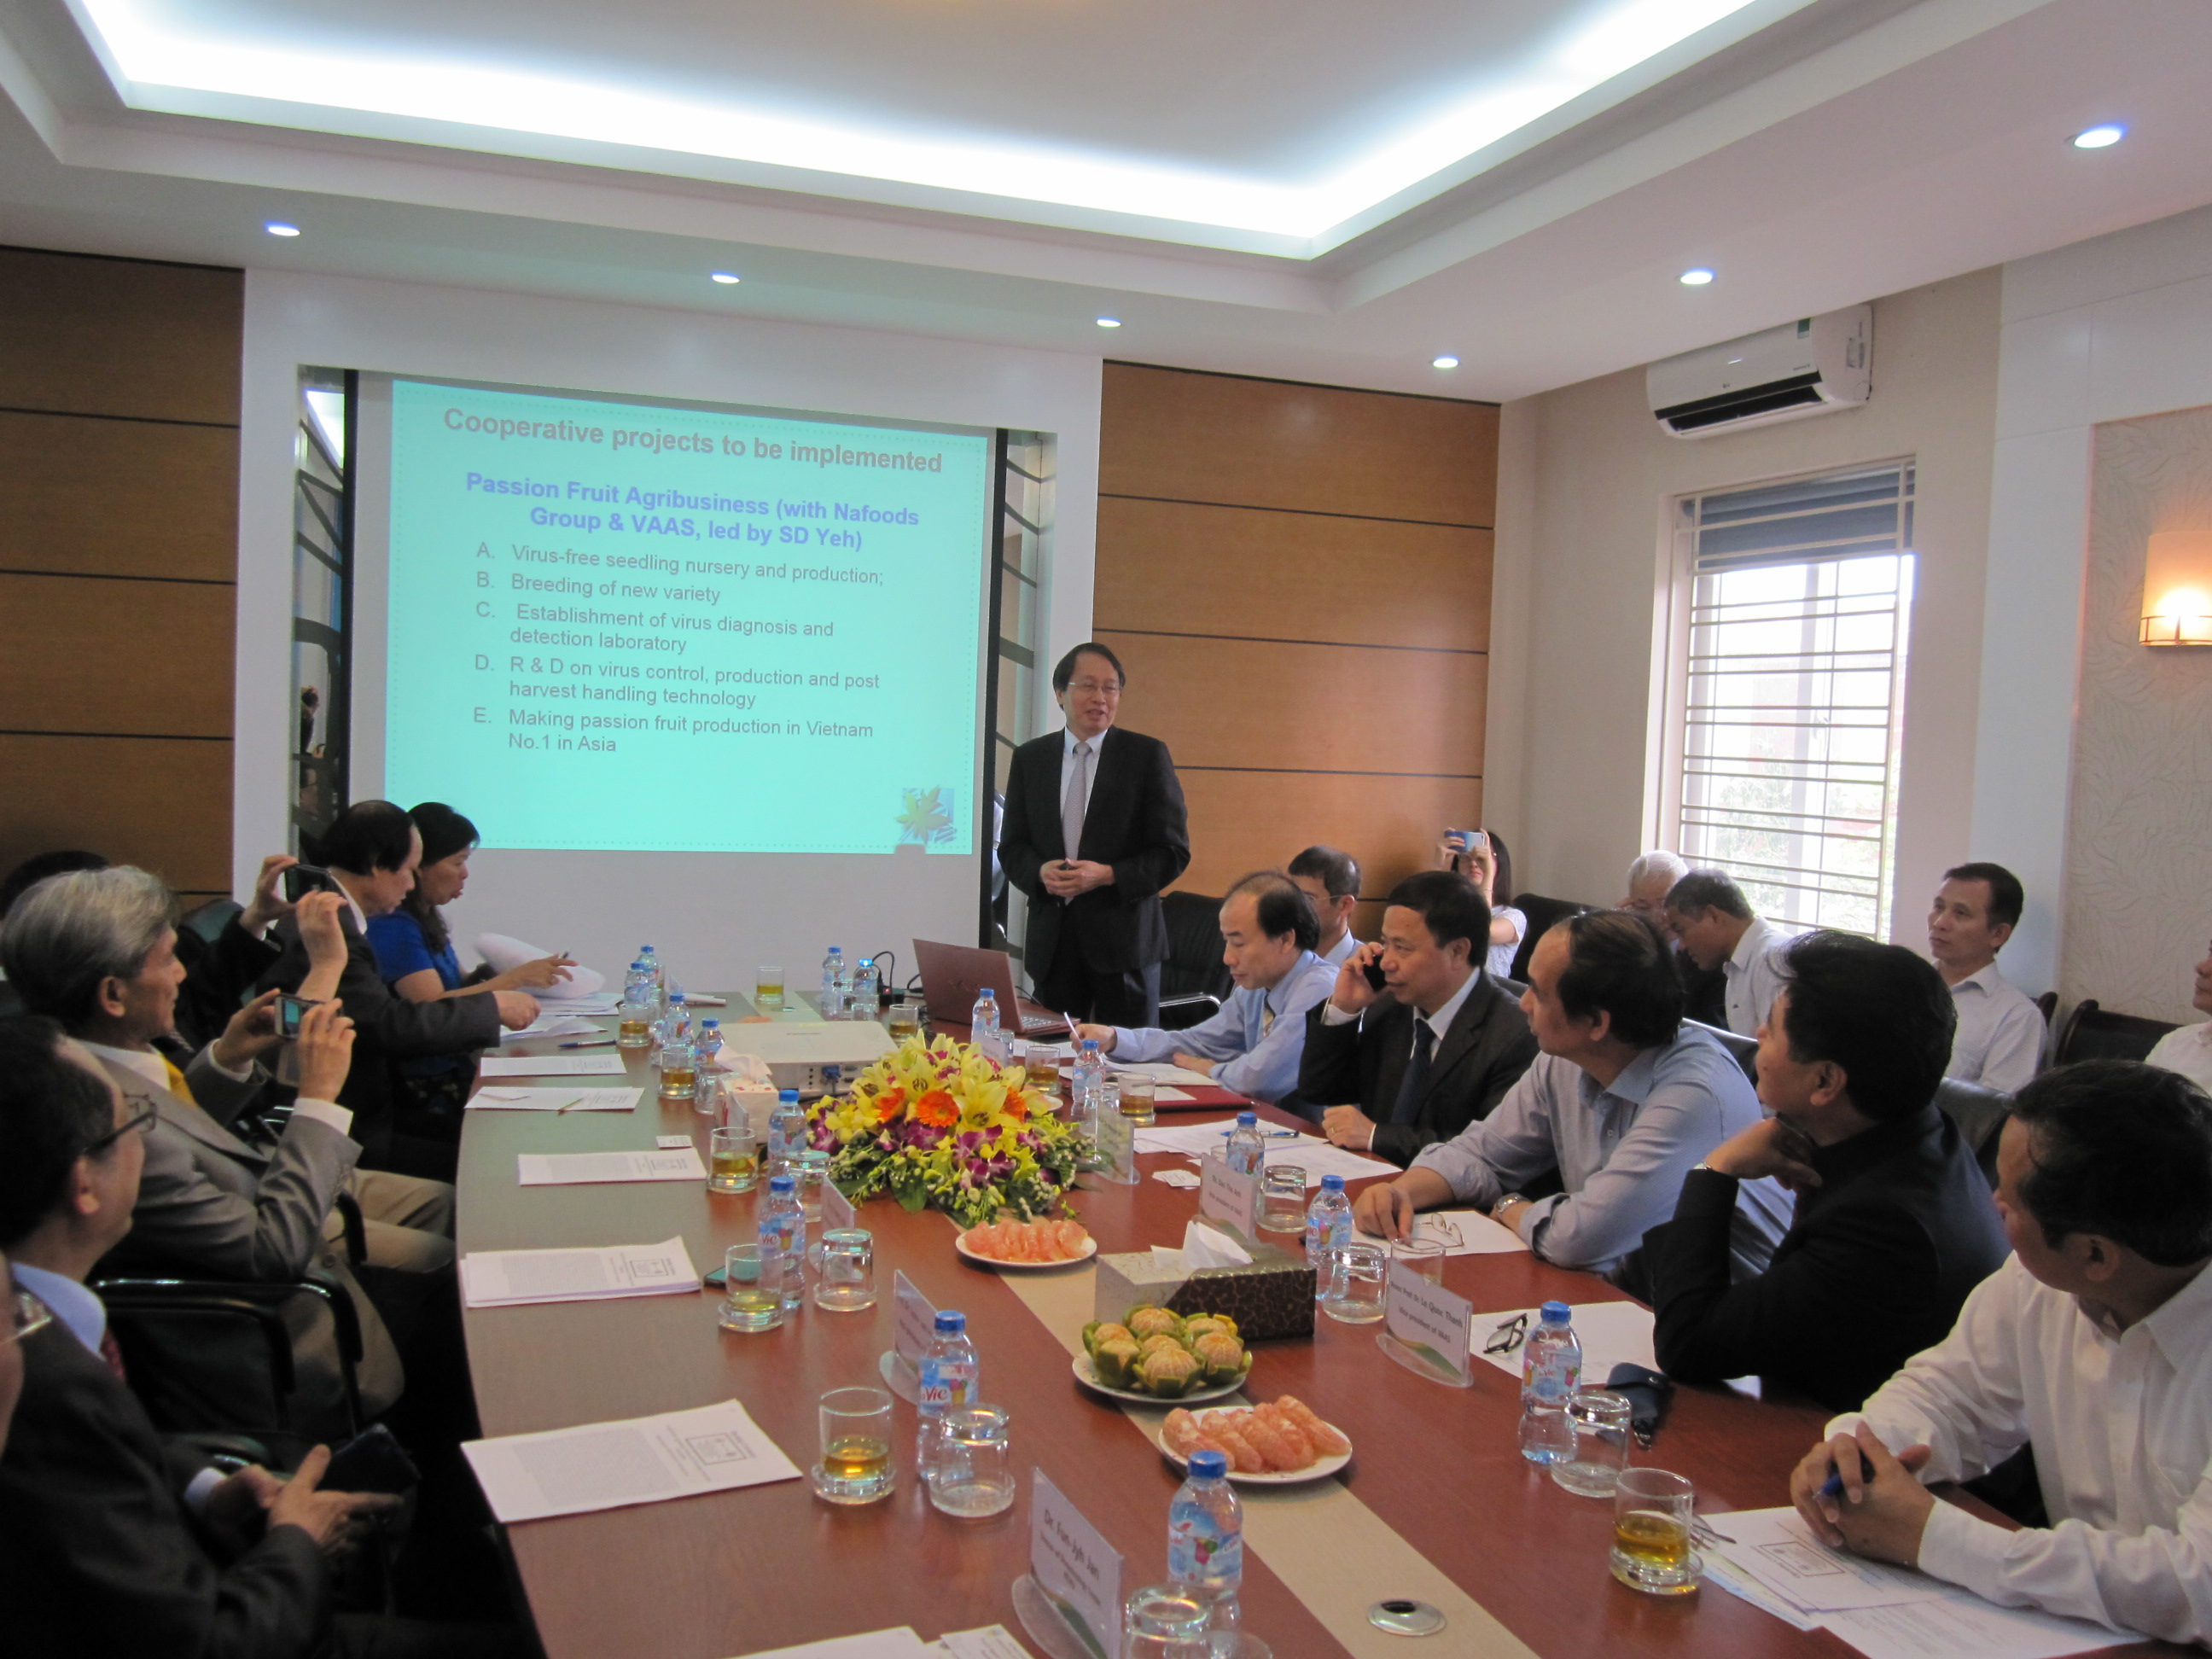 Prof. Shyi-Dong Yeh, the host of program, explains the mission of ASTIC